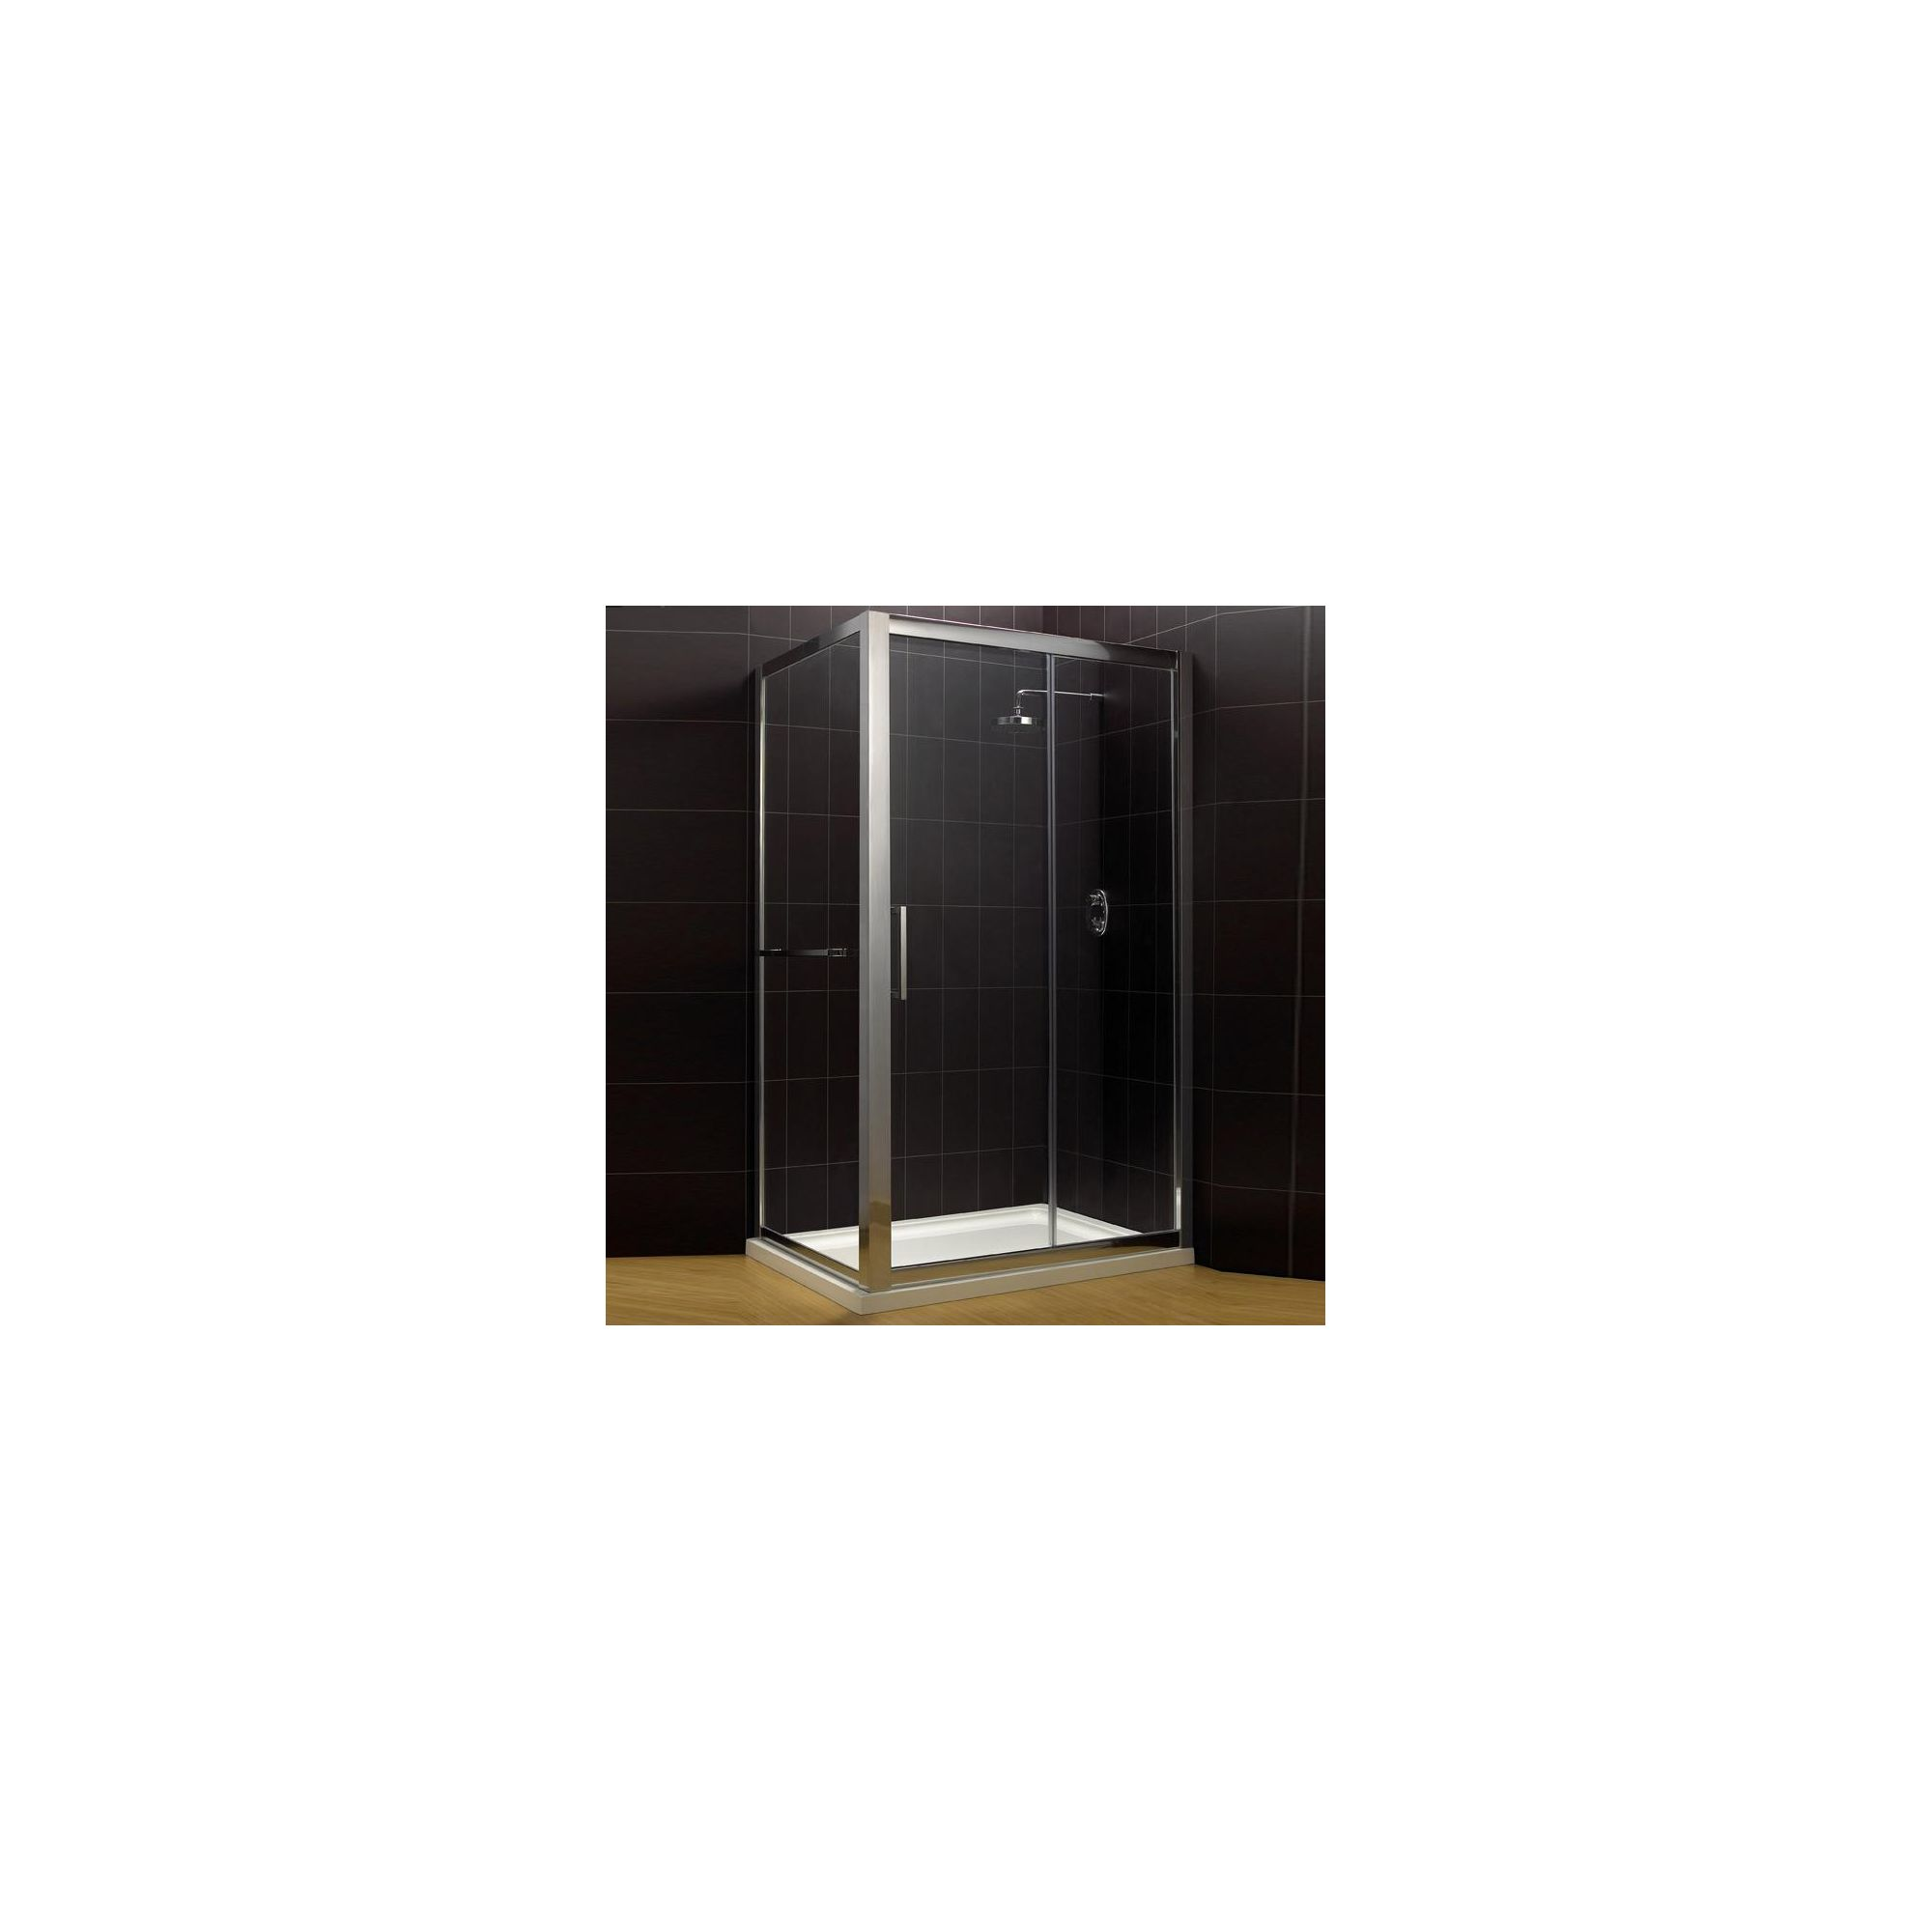 Duchy Supreme Silver Sliding Door Shower Enclosure, 1400mm x 800mm, Standard Tray, 8mm Glass at Tescos Direct